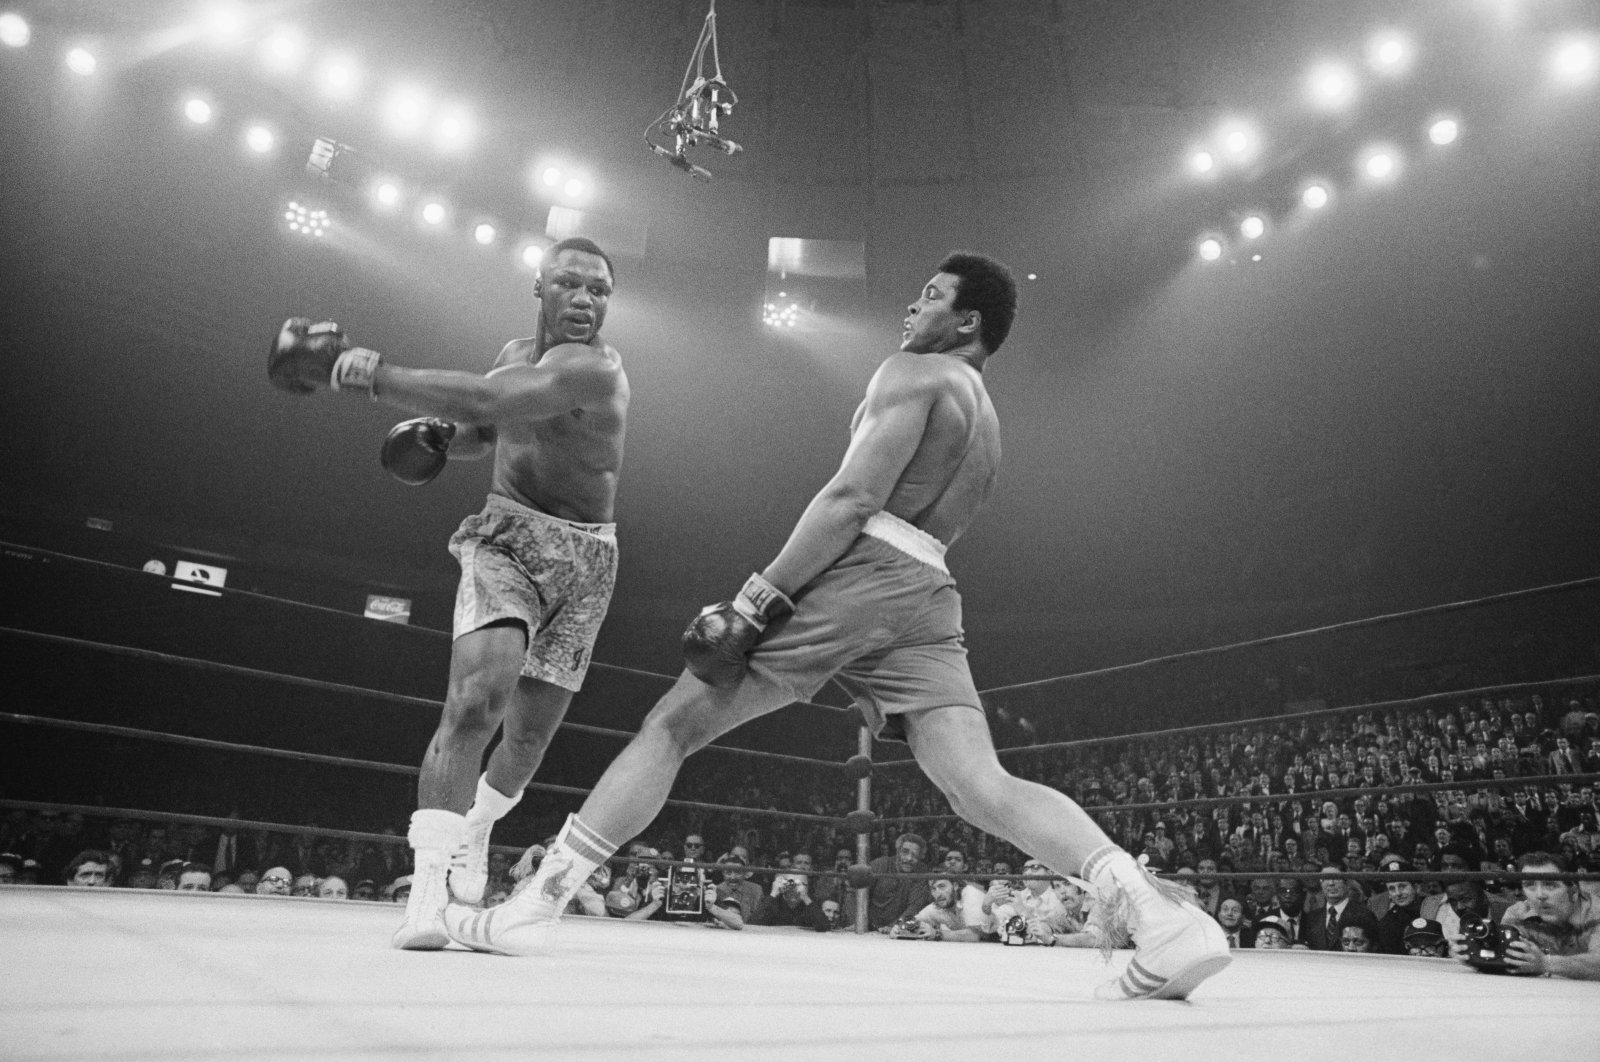 Boxer Muhammad Ali (R) steps away from a punch thrown by boxer Joe Frazier during their heavyweight title fight at Madison Square Garden, New York, U.S., March 8, 1971. (Getty Images Photo)